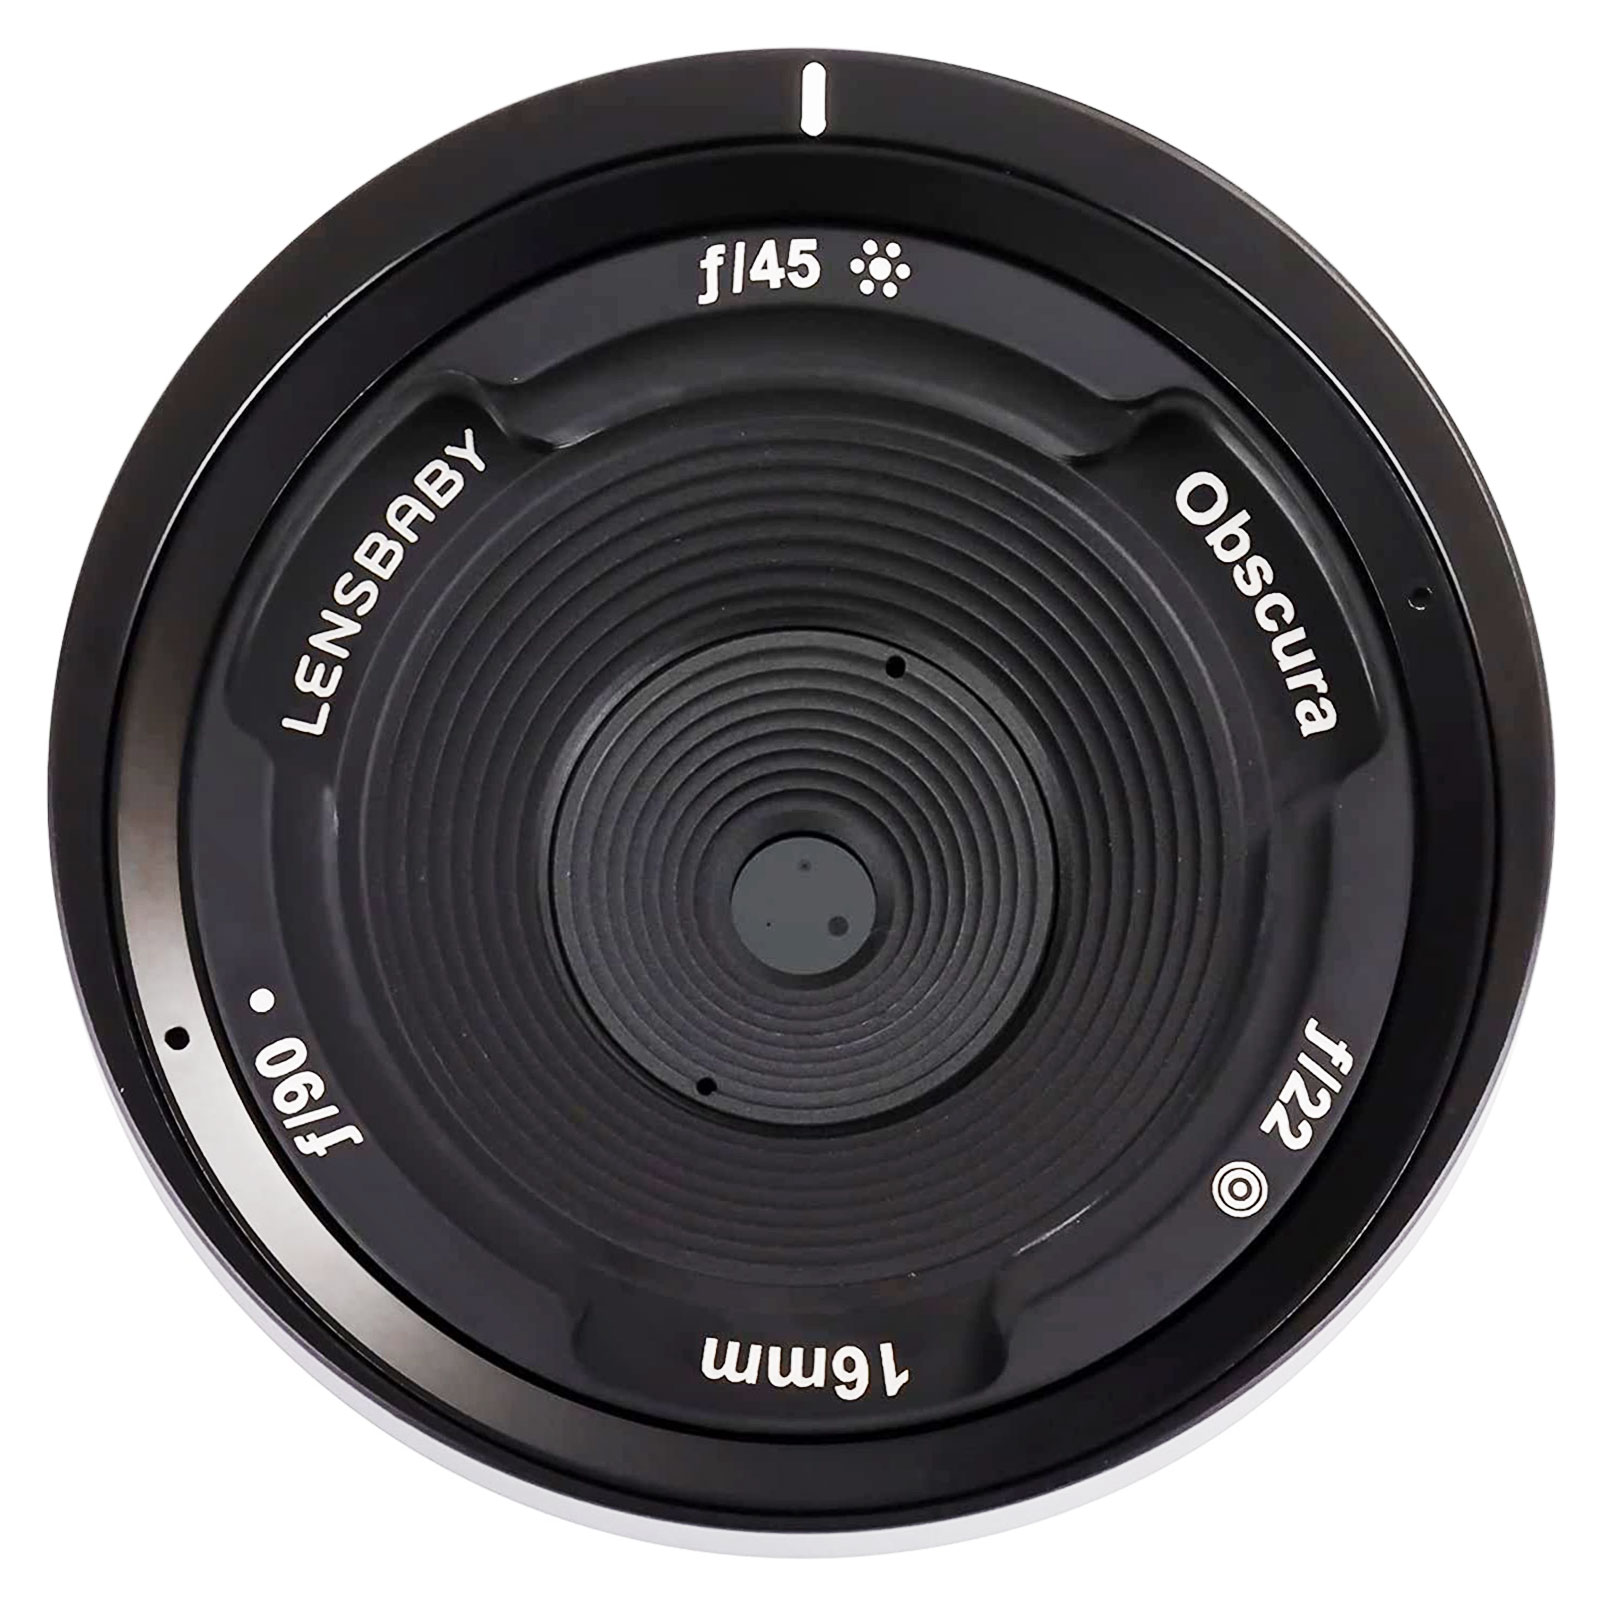 Lensbaby Obscura 16mm Pinhole/Zone Plate Pancake Lens